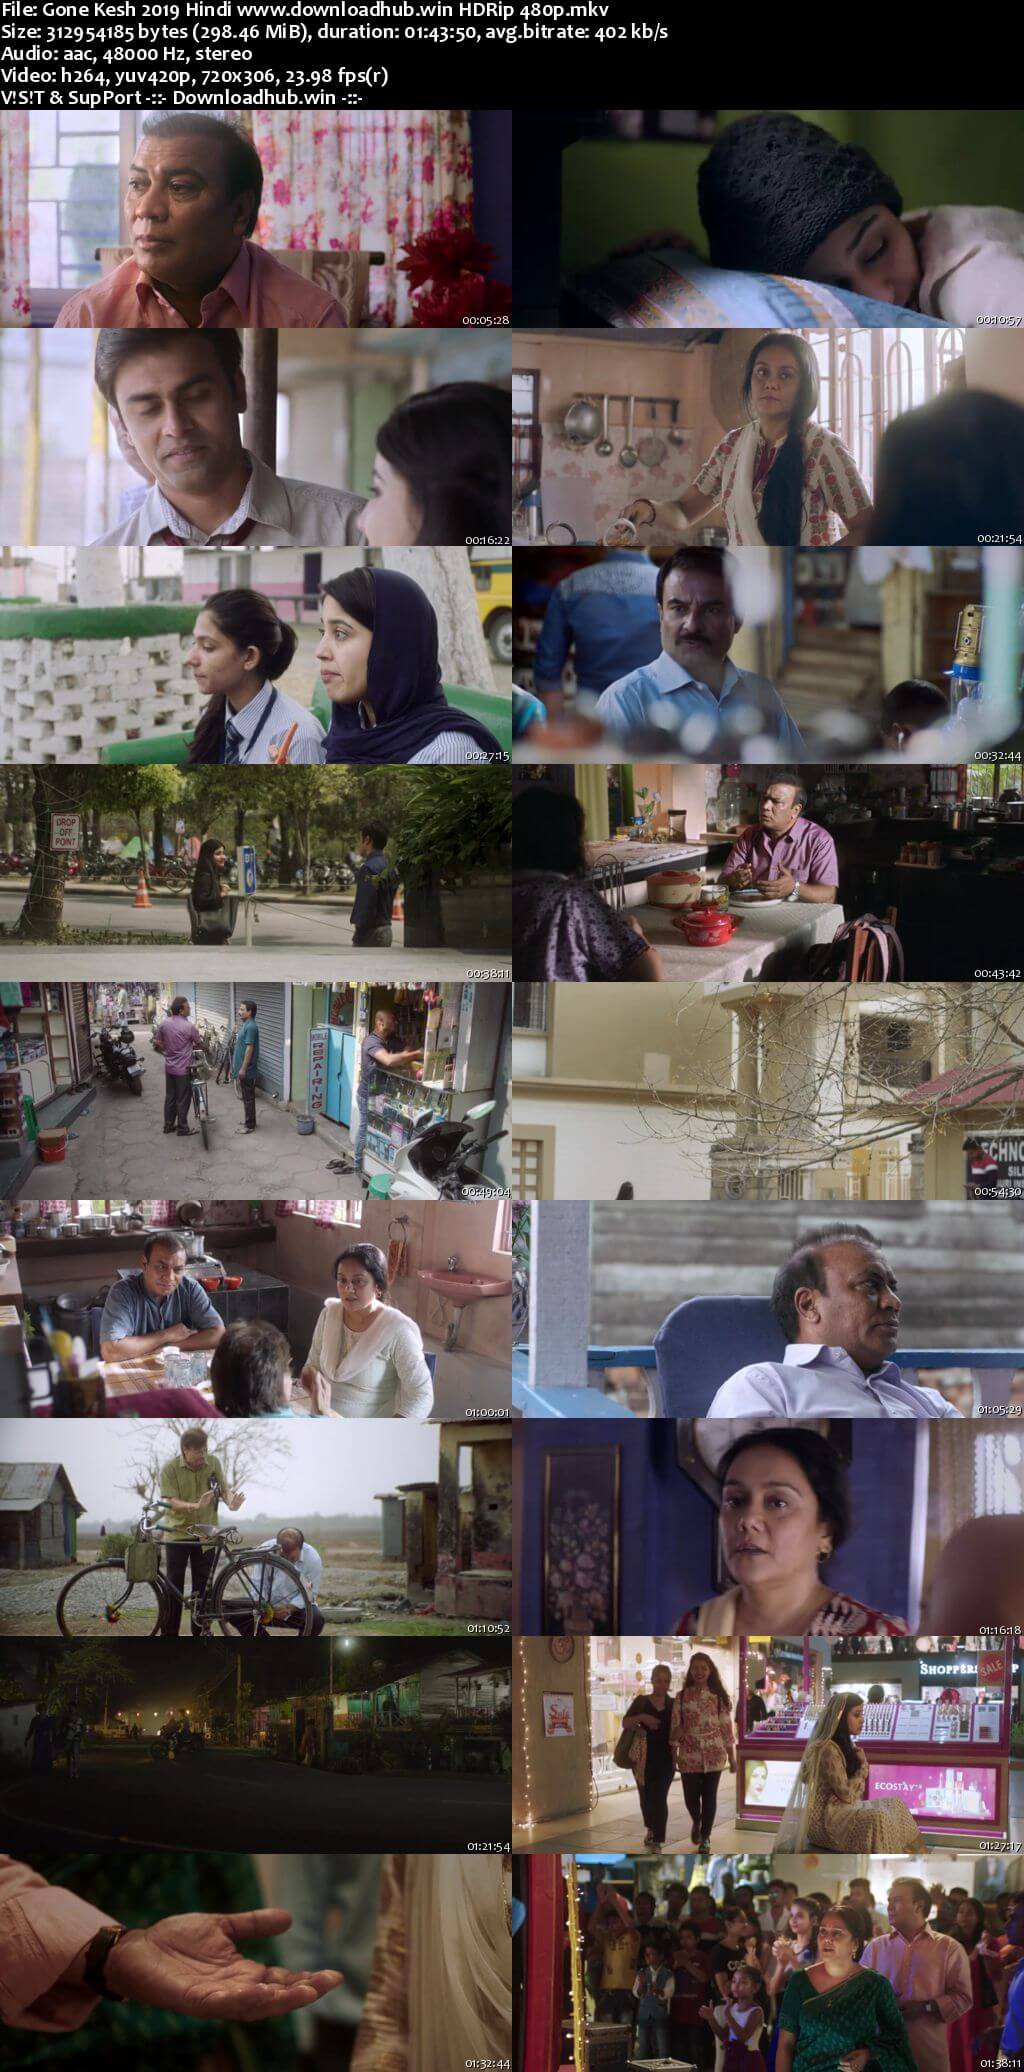 Gone Kesh 2019 Hindi 300MB HDRip 480p